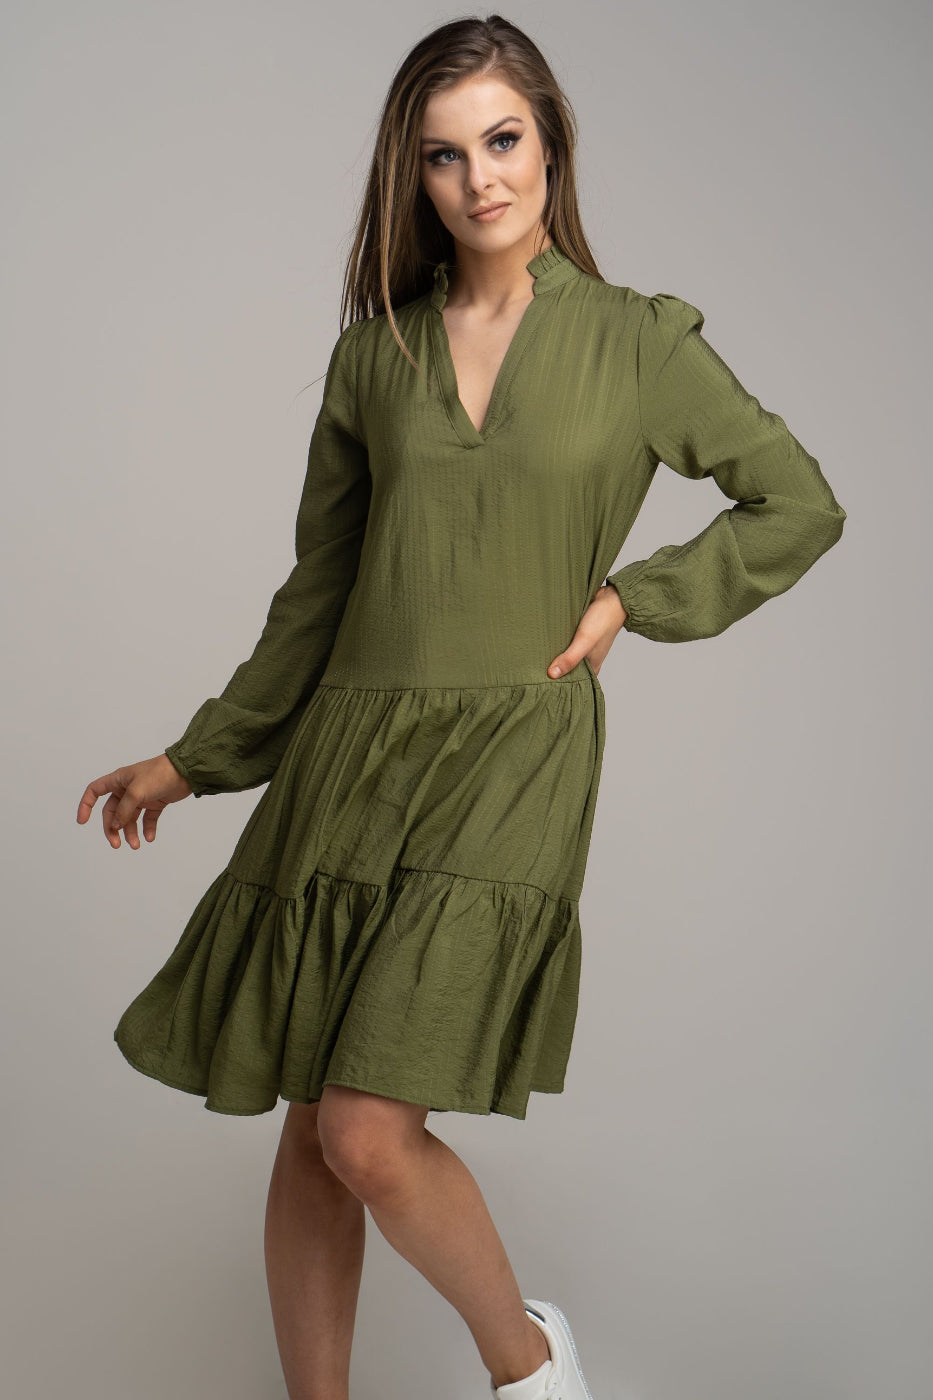 Khaki Tunic Dress